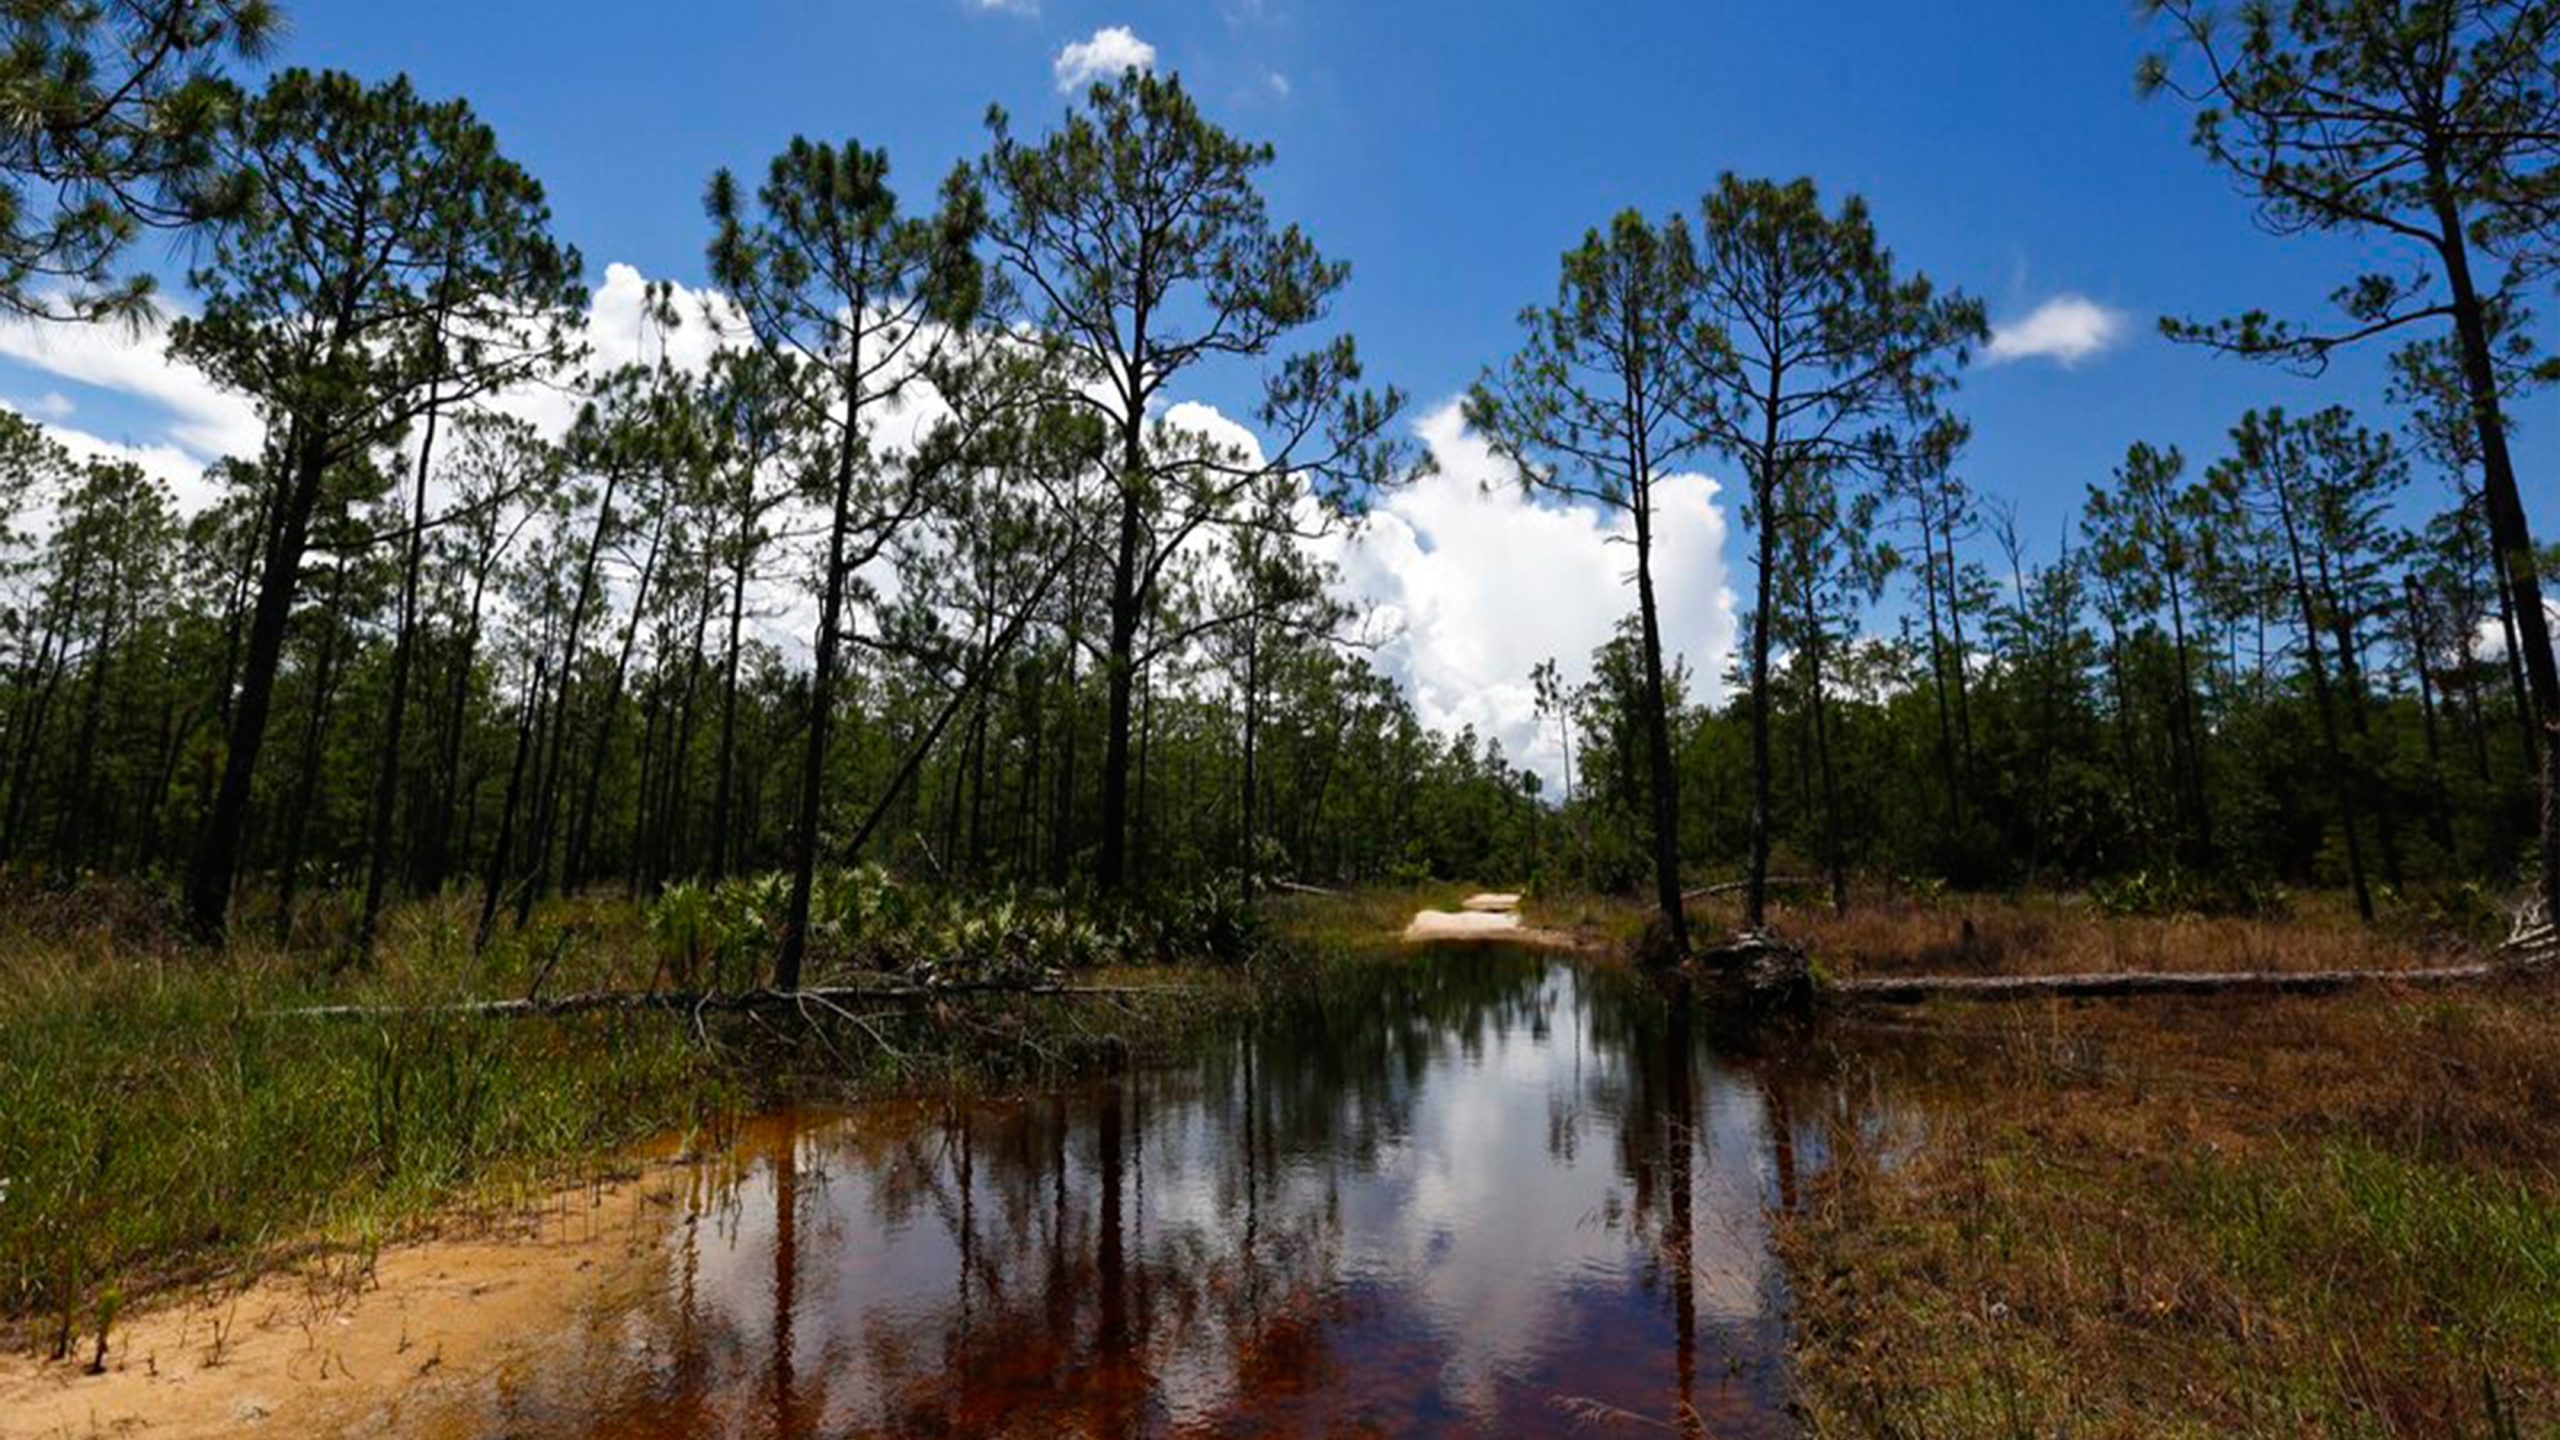 FILE - In this June 7, 2018, file photo, a puddle blocks a path that leads into the Panther Island Mitigation Bank near Naples, Fla. The Trump administration on Thursday, Sept. 12, 2019, revoked an Obama-era regulation that shielded many U.S. wetlands and streams from pollution but was opposed by developers and farmers who said it hurt economic development and infringed on property rights. (AP Photo/Brynn Anderson)